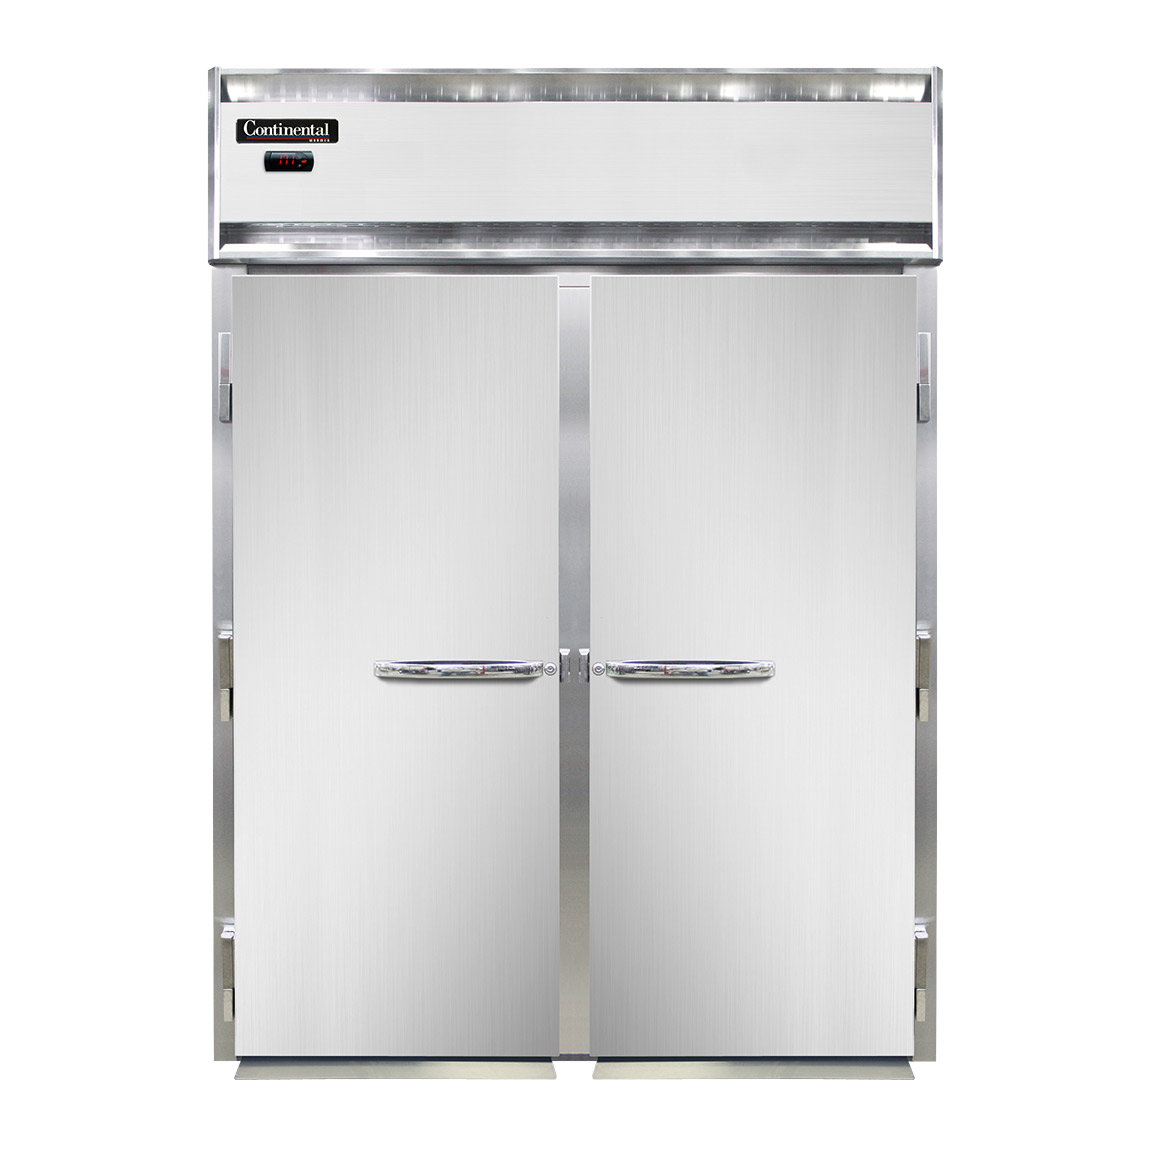 Continental Refrigerator DL2WI heated cabinet, roll-in